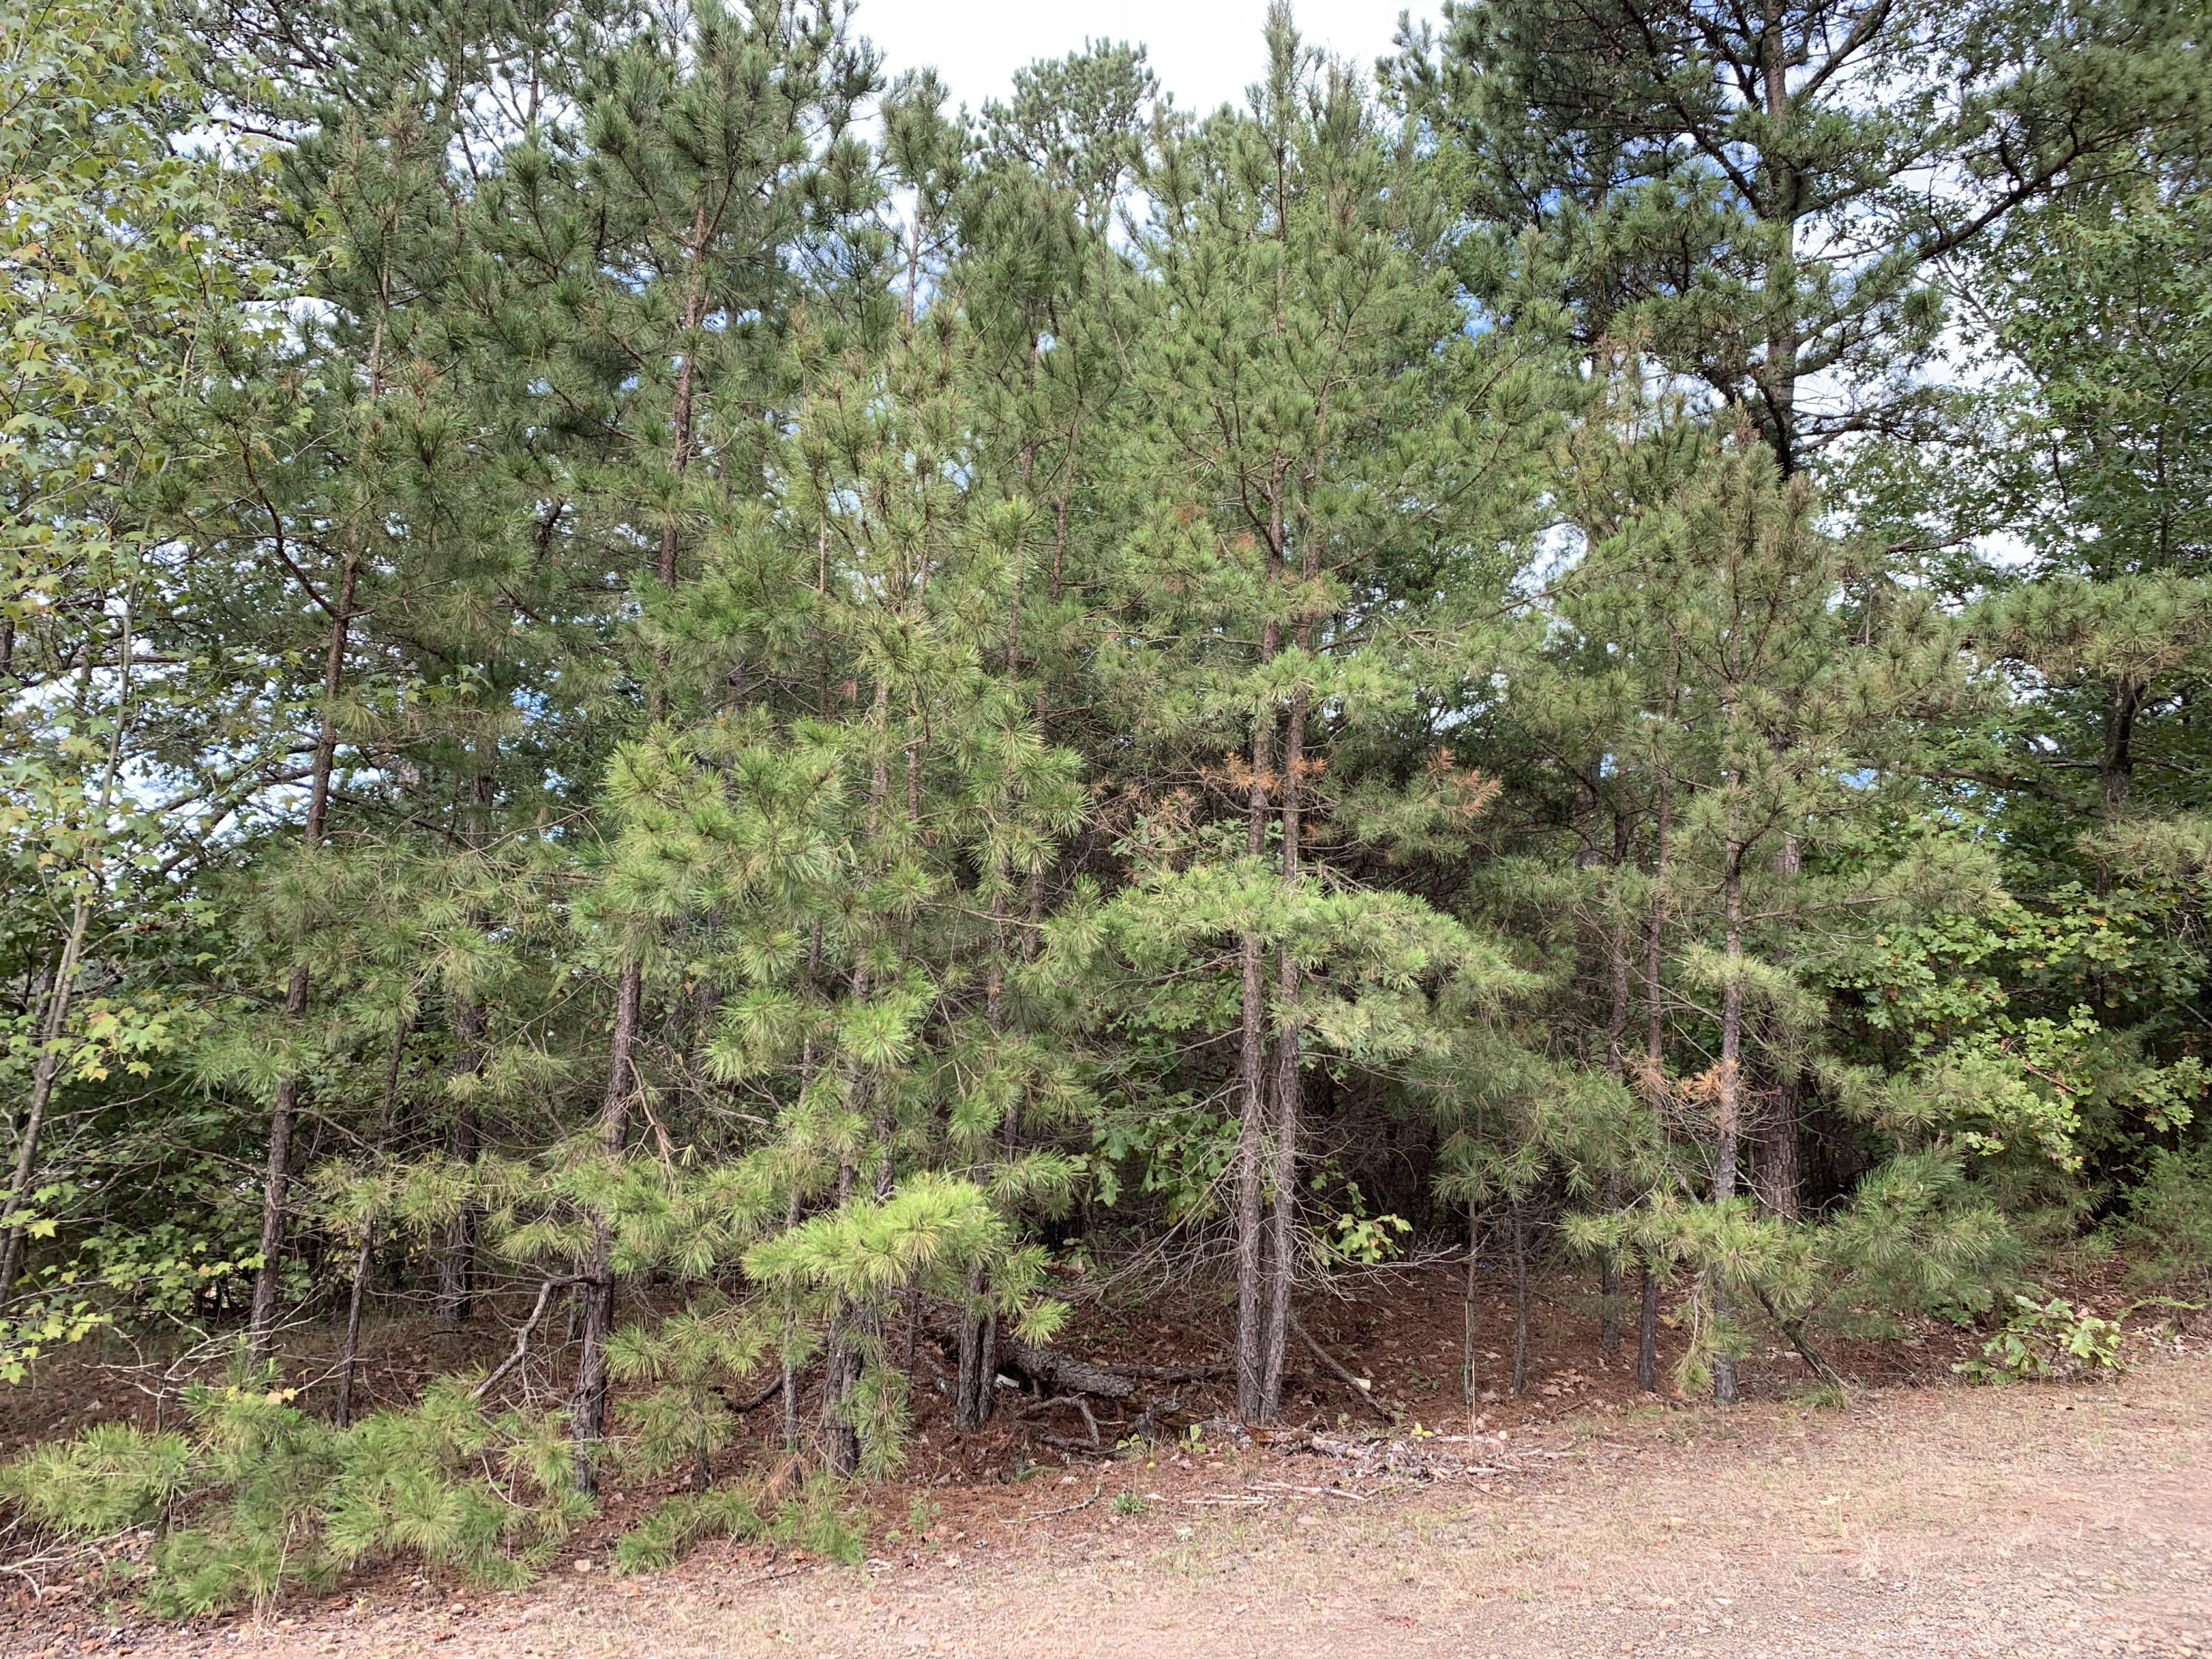 Large photo 3 of land for sale at  Bennett Orchard Estates , London, AR, listed by Coldwell Banker Premier Realty